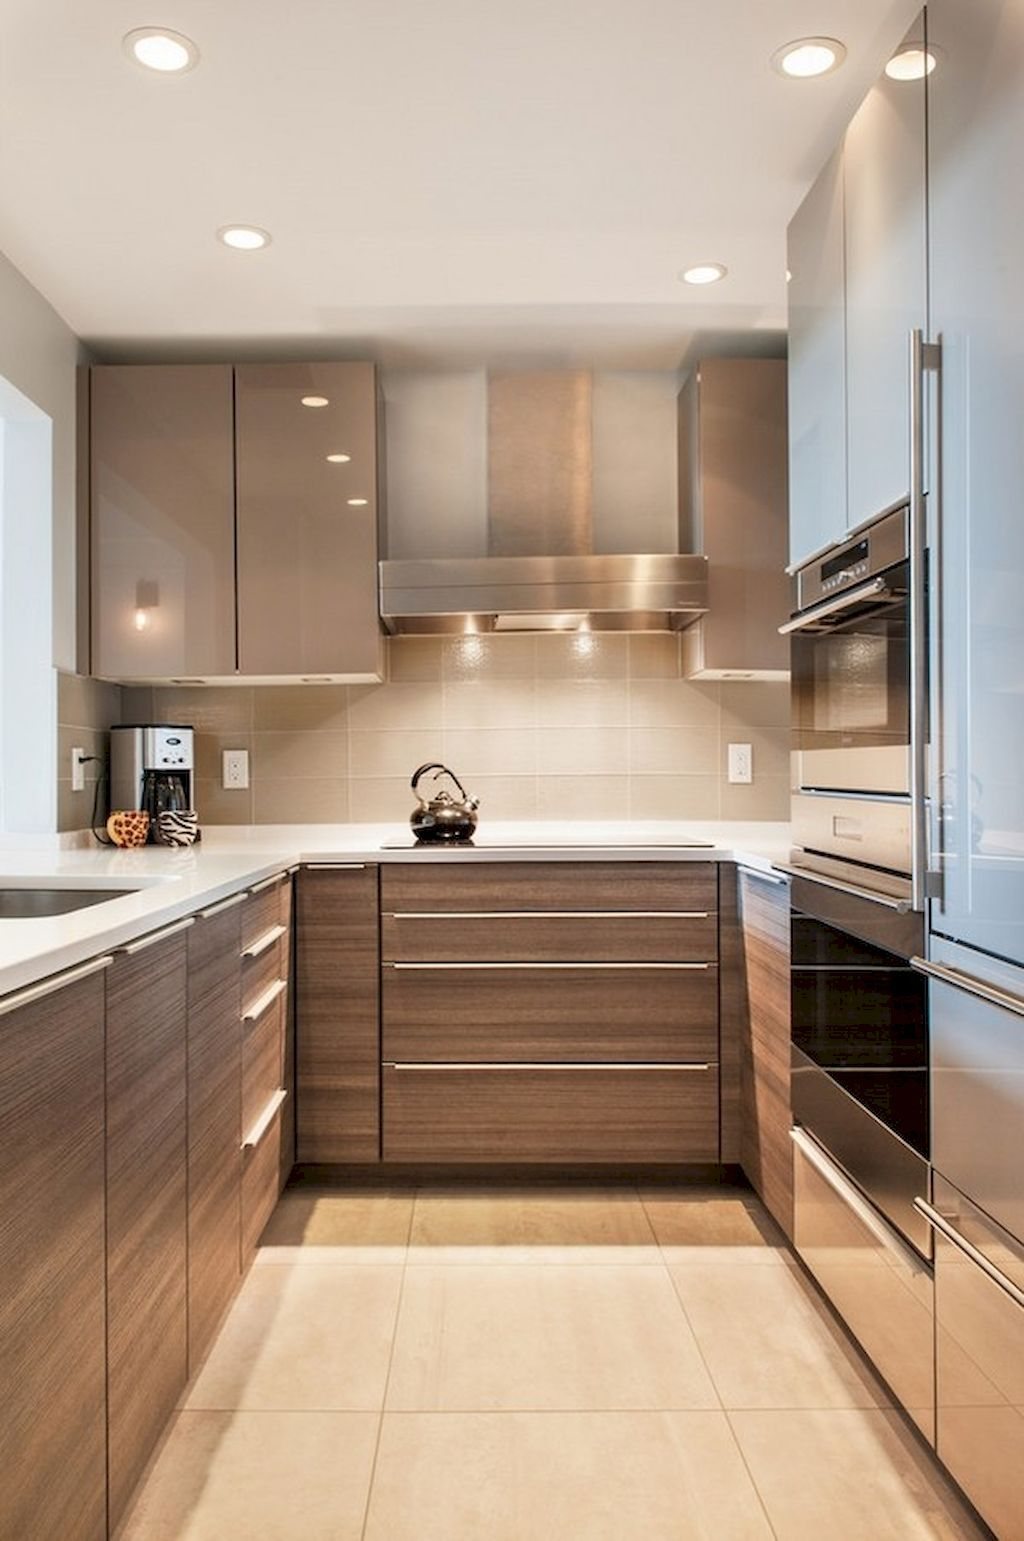 Cool 60 Awesome Modern Kitchens Ideas Remodeling On A Budget